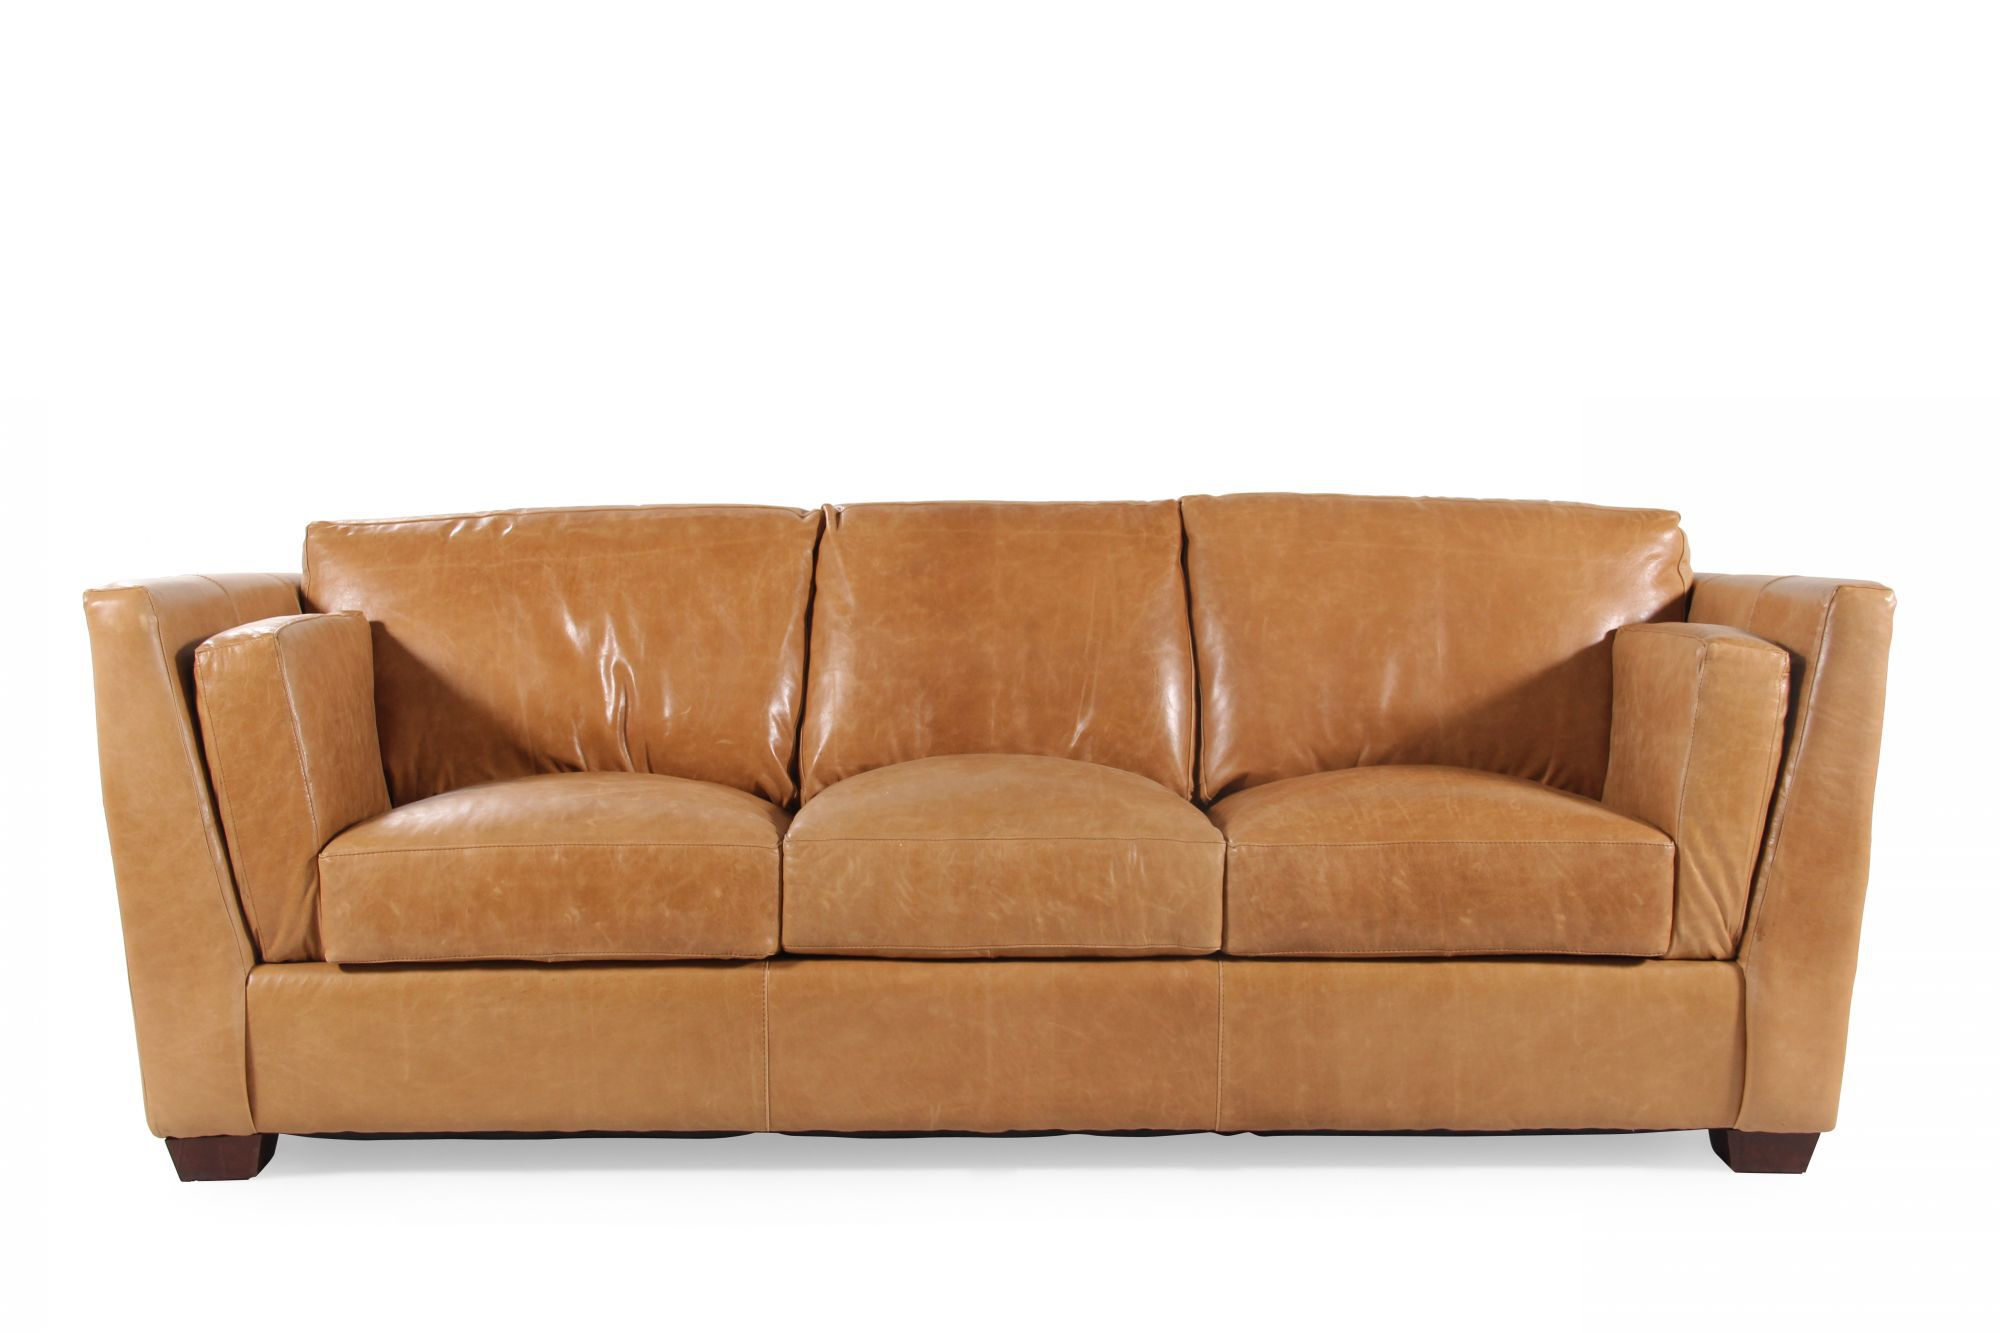 tindall 96 leather sofa 3 2 fabric sofas traditional quot in caramel brown mathis